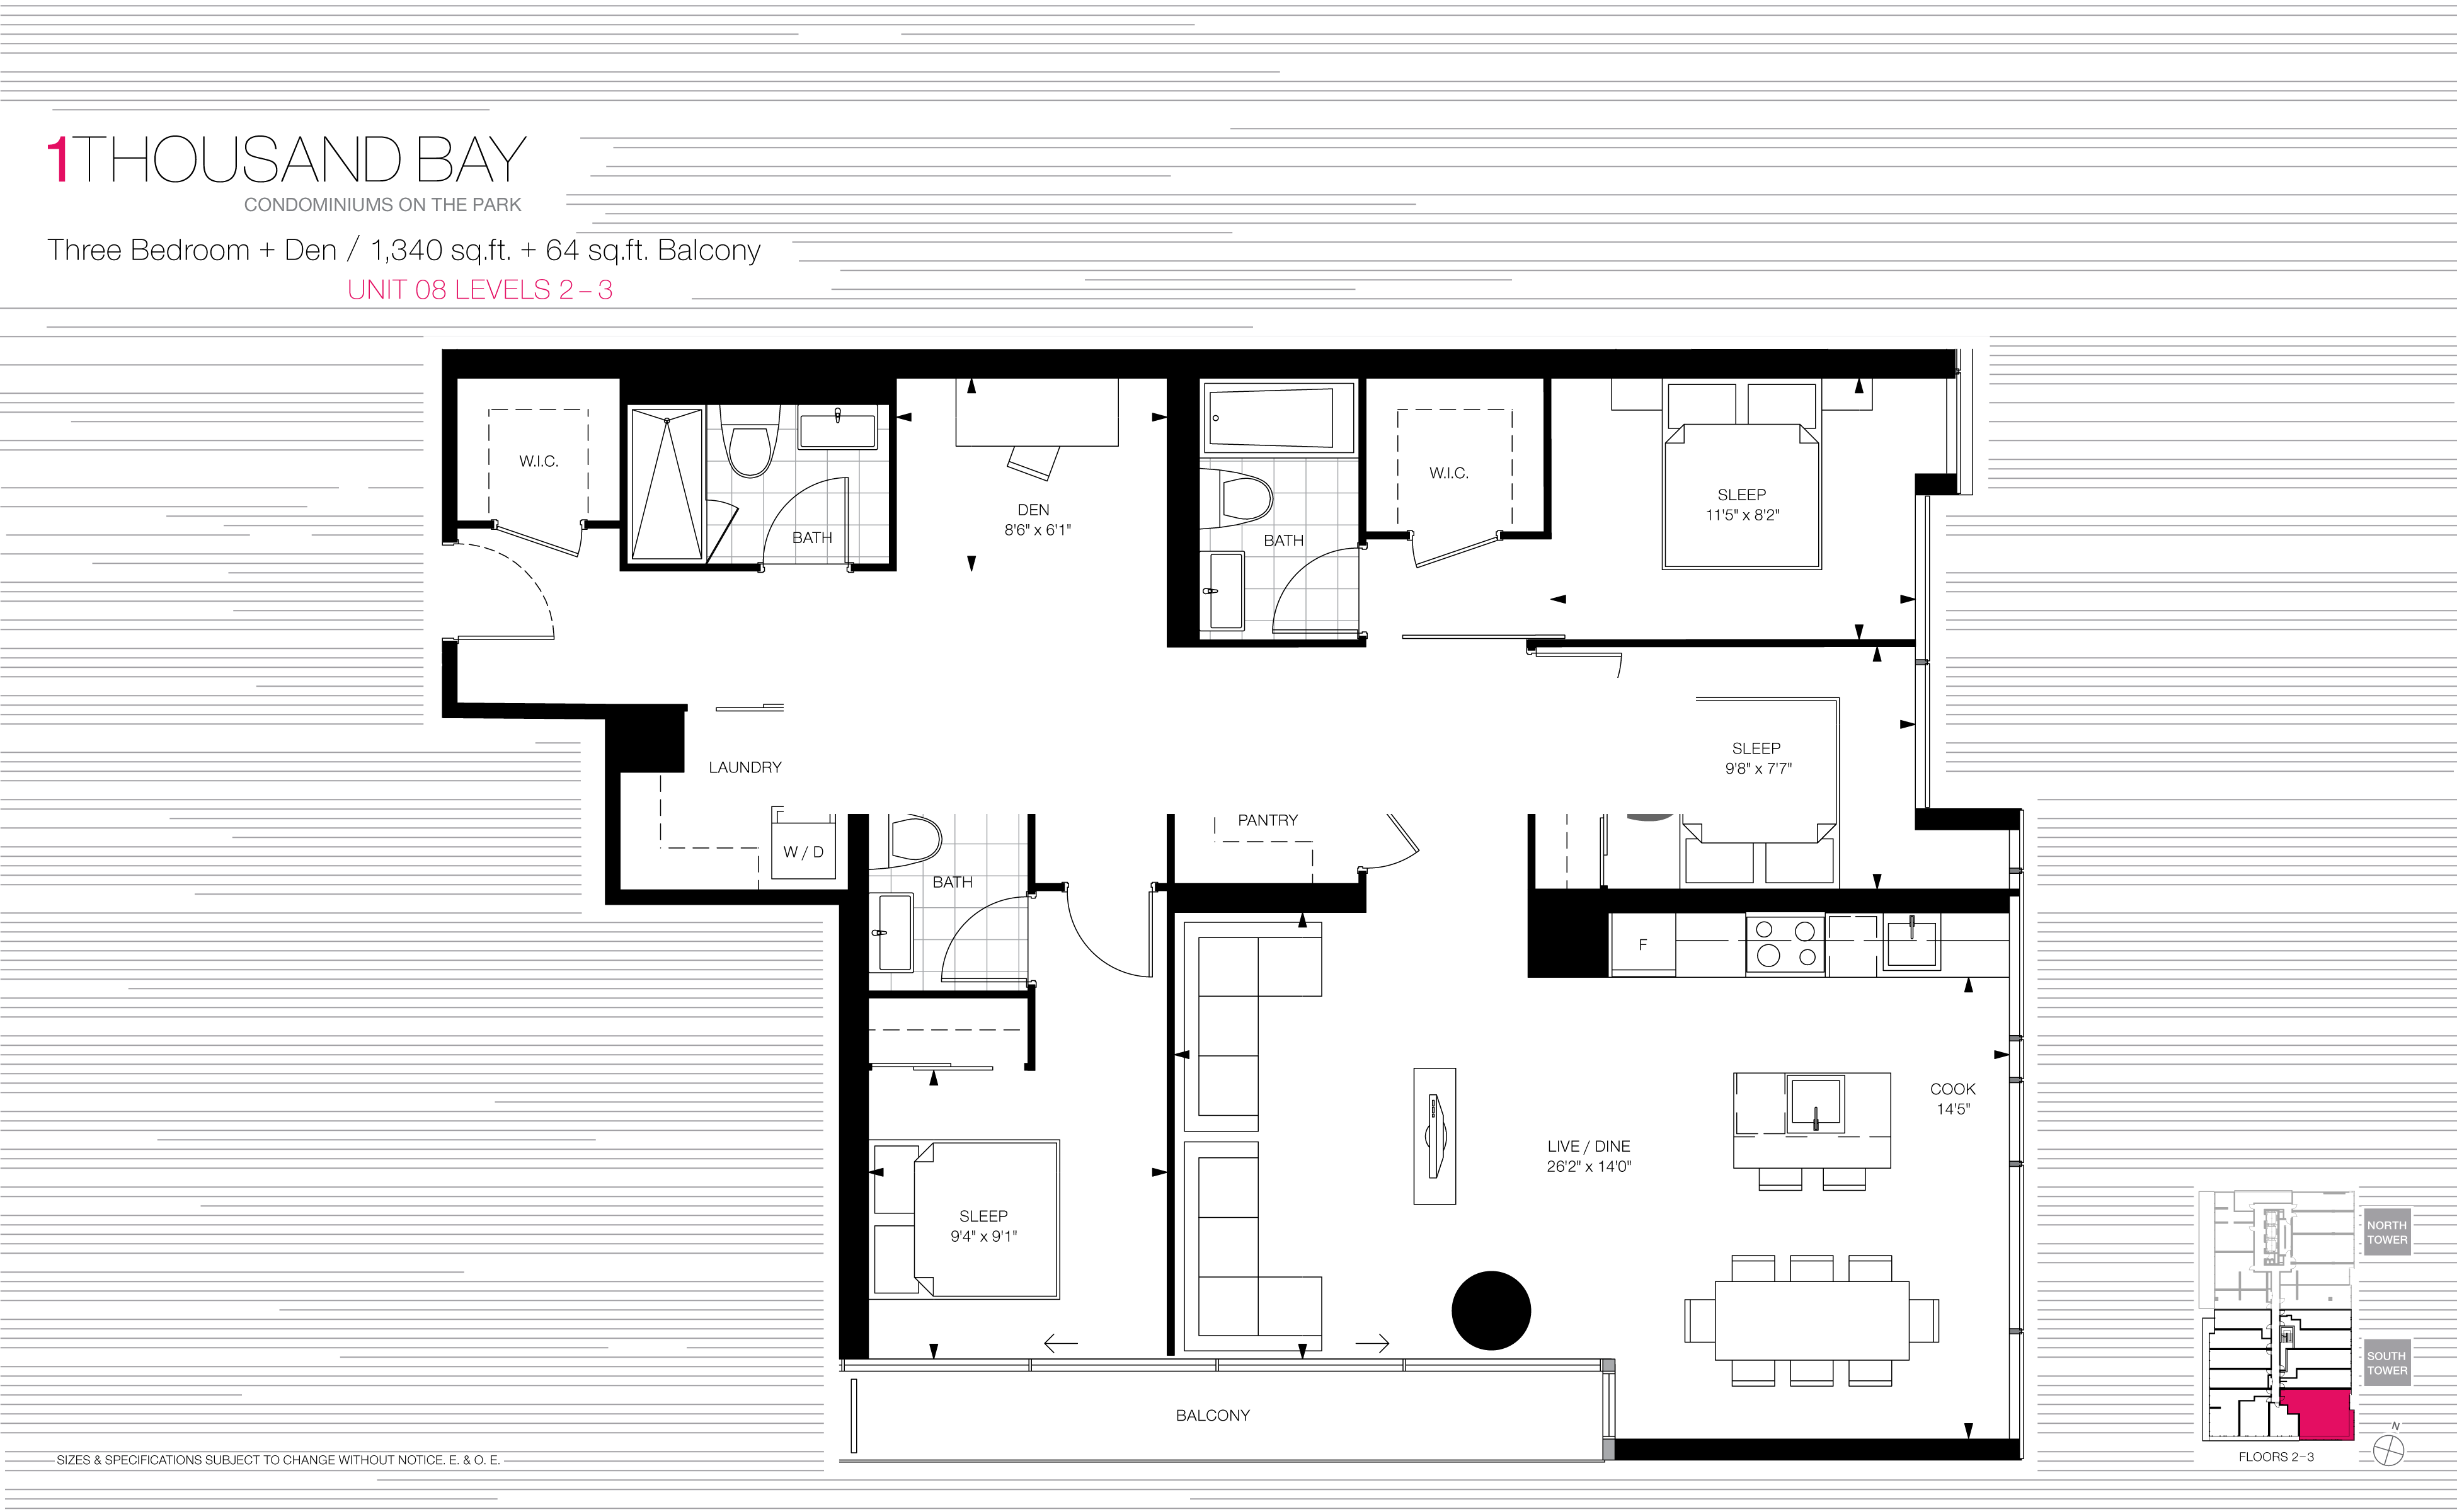 1000 BAY FLOORPLANS - THREE BED SUITE 1340 SQ FT - CONTACT YOSSI KAPLAN